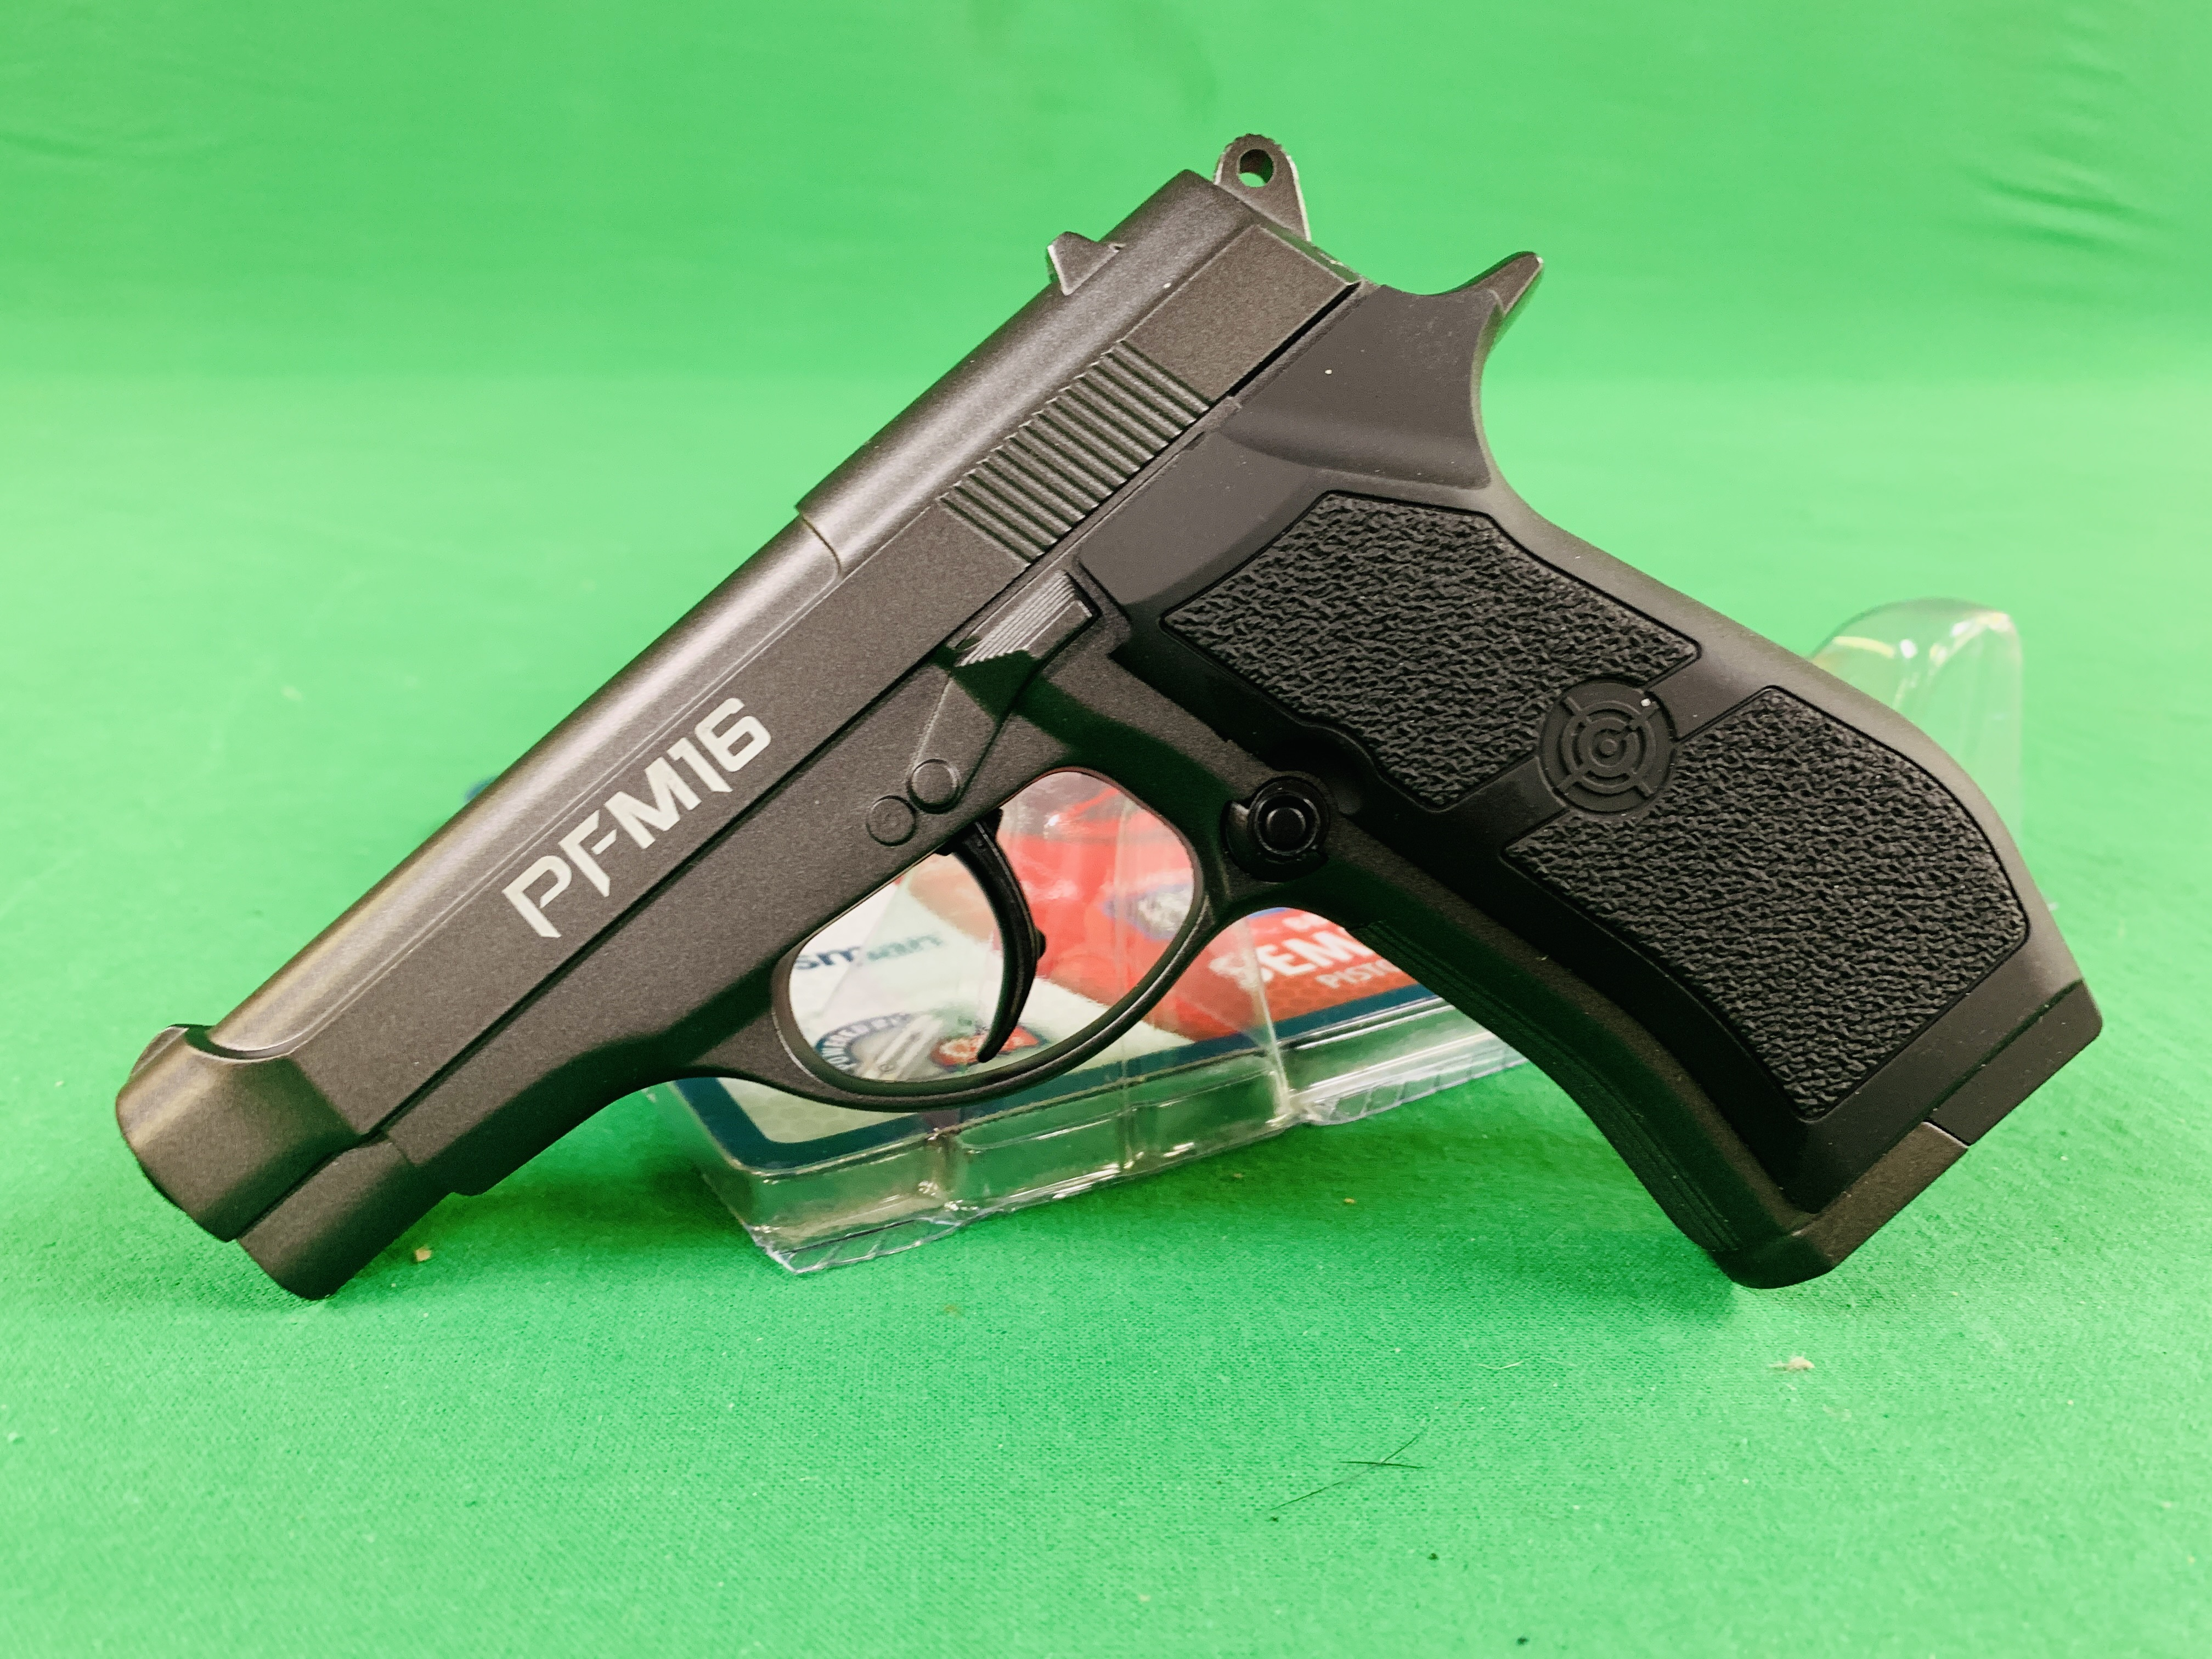 A CROSMAN PF M16 COMPACT SEMI-AUTO CO² BB AIR PISTOL BOXED AS NEW - (ALL GUNS TO BE INSPECTED AND - Image 3 of 4